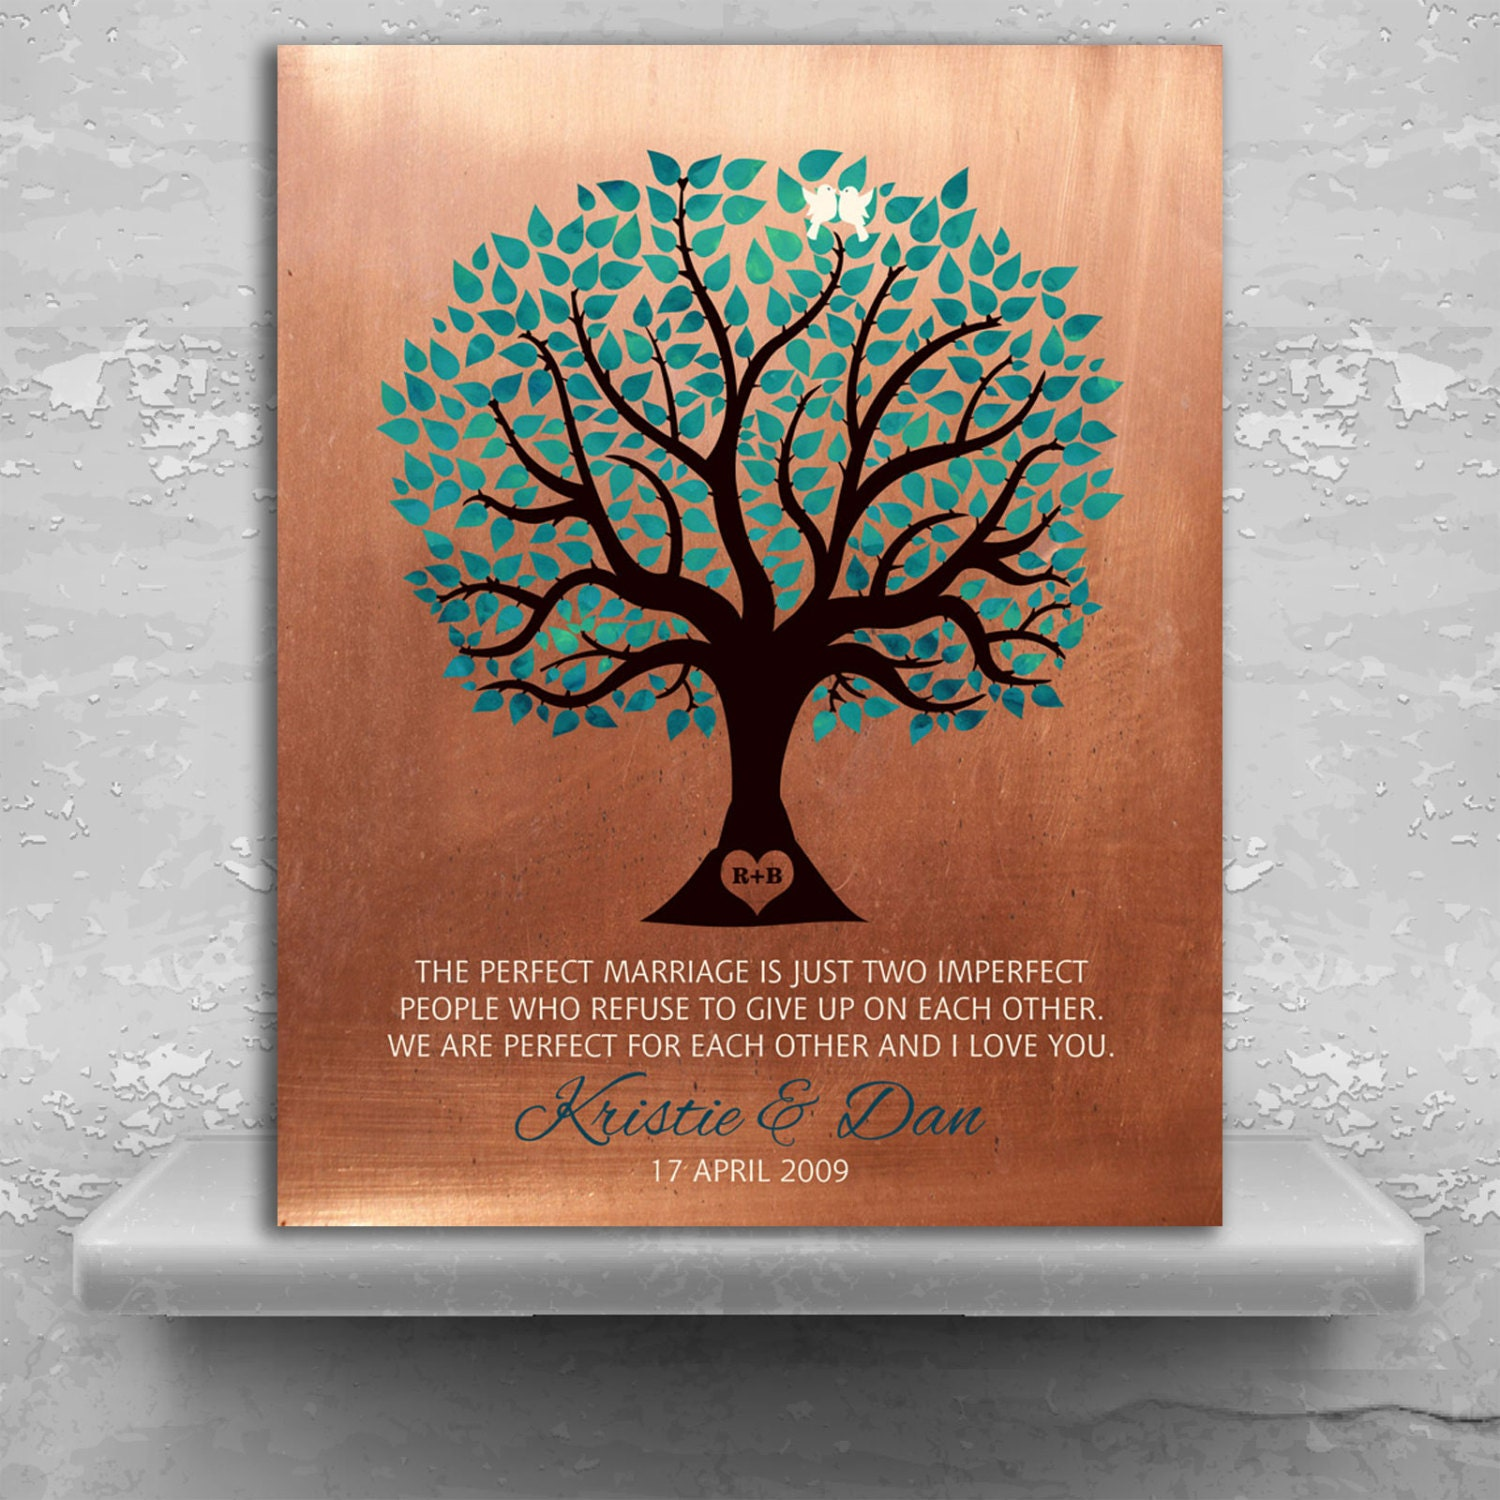 7th Wedding Anniversary Gift: 7th Traditional Anniversary Personalized Gift Faux Copper